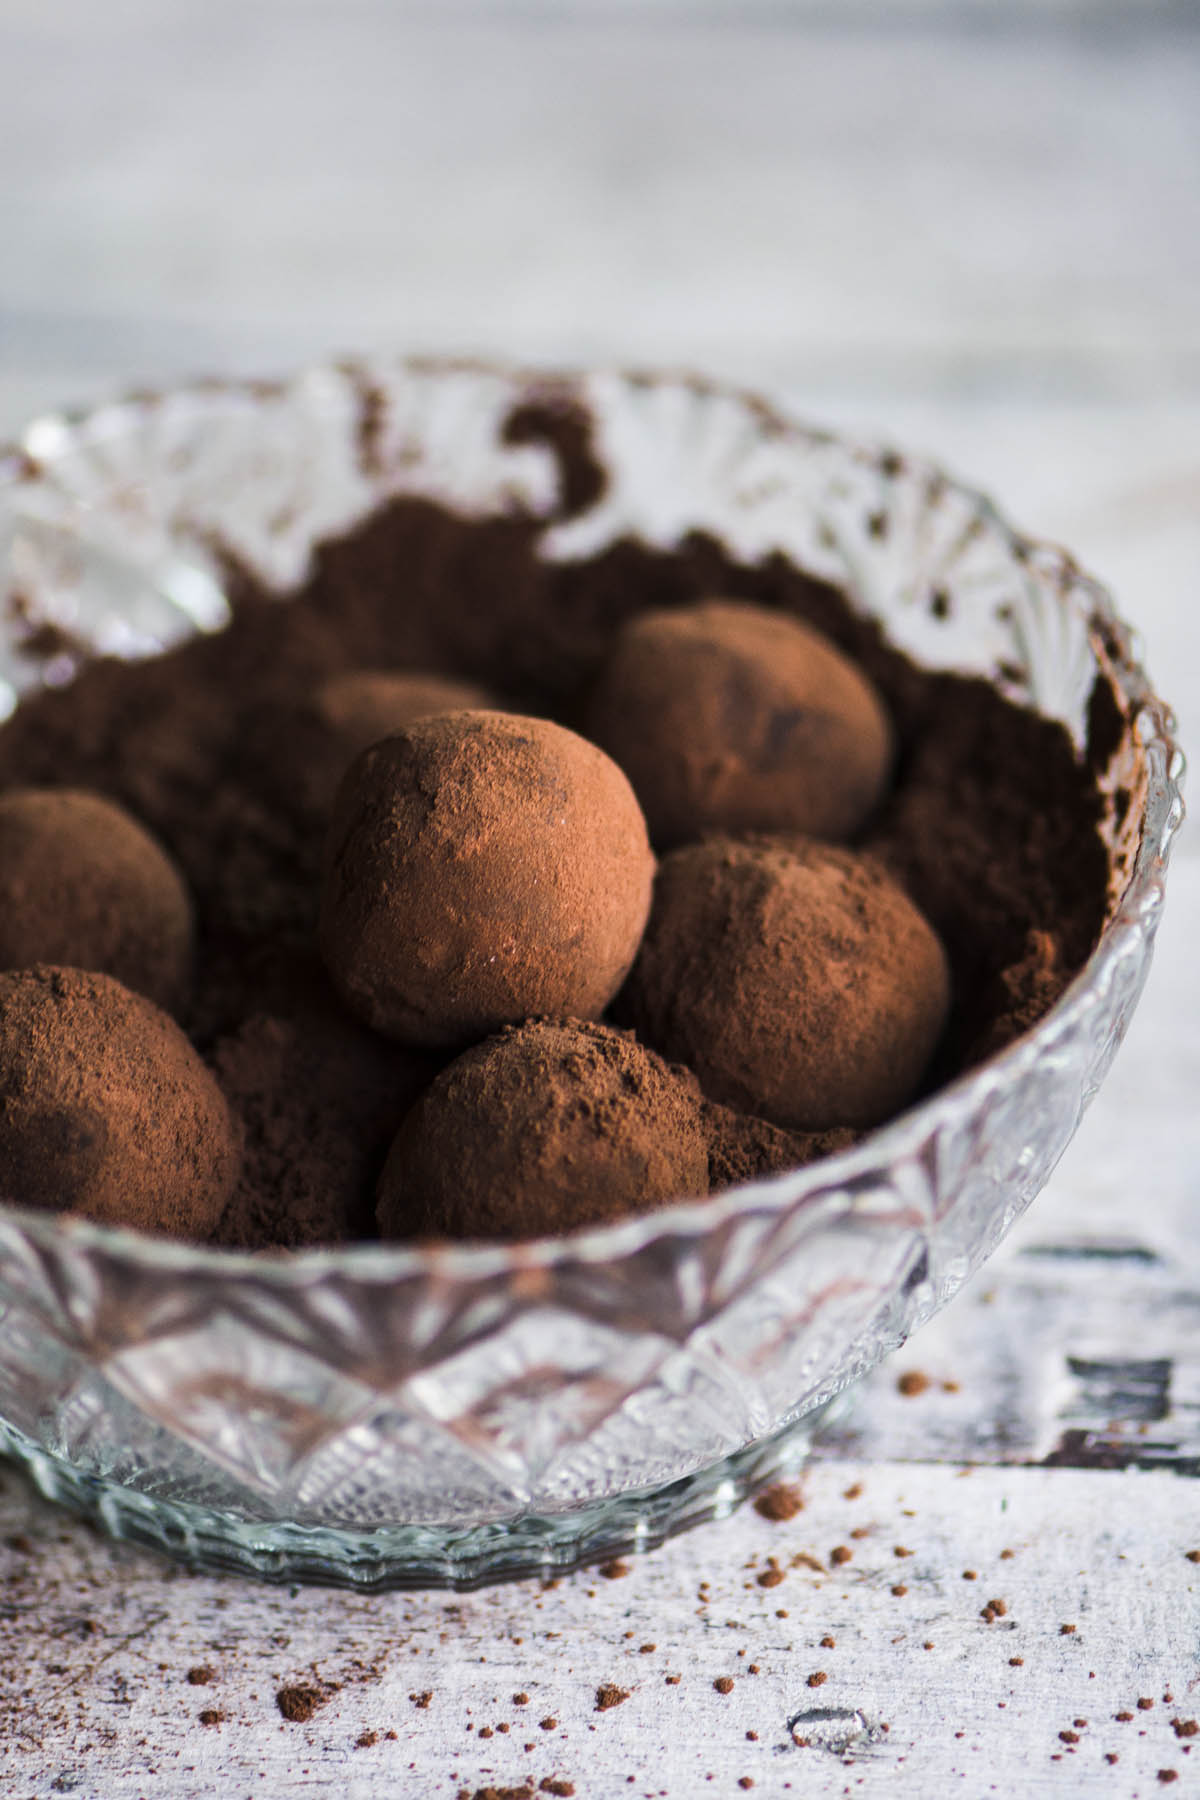 chocolate chili truffles in a glass bowl